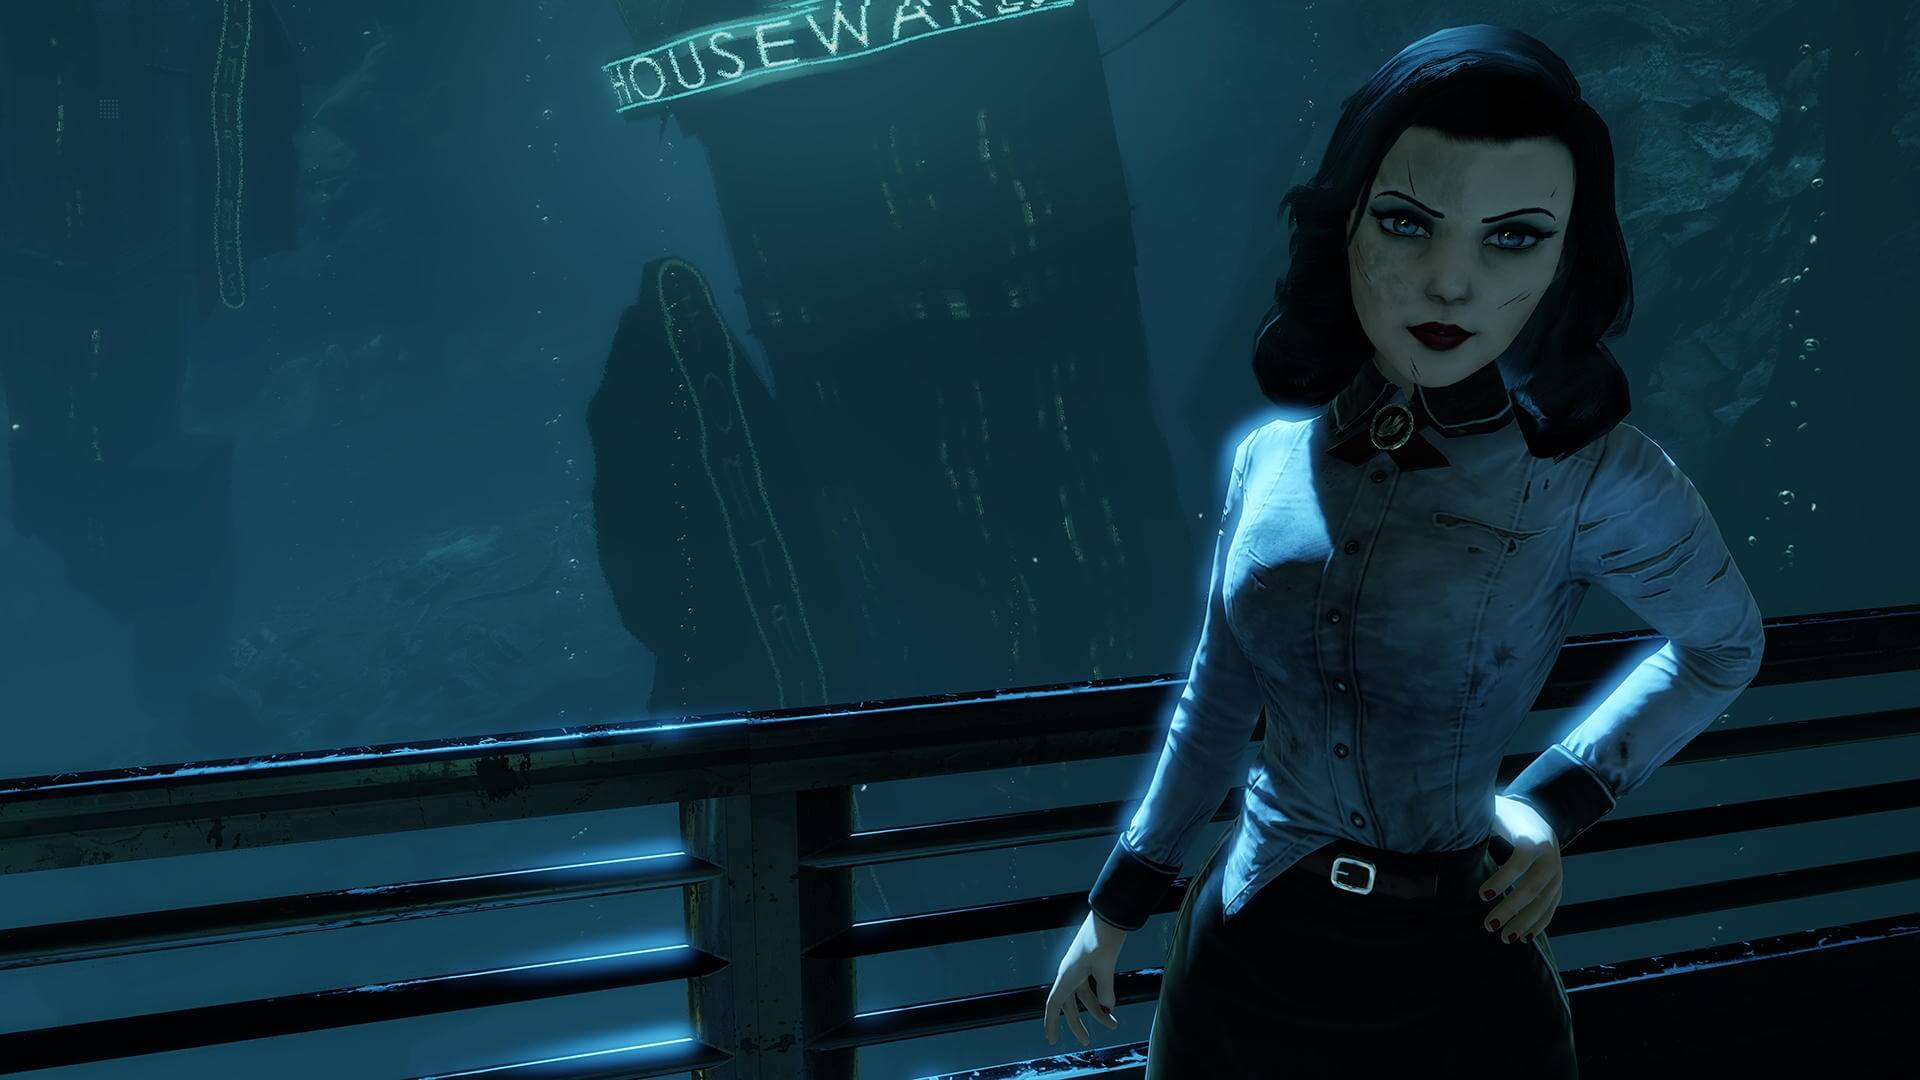 BioShock Infinite: Burial at Sea - Episode One (ROW)